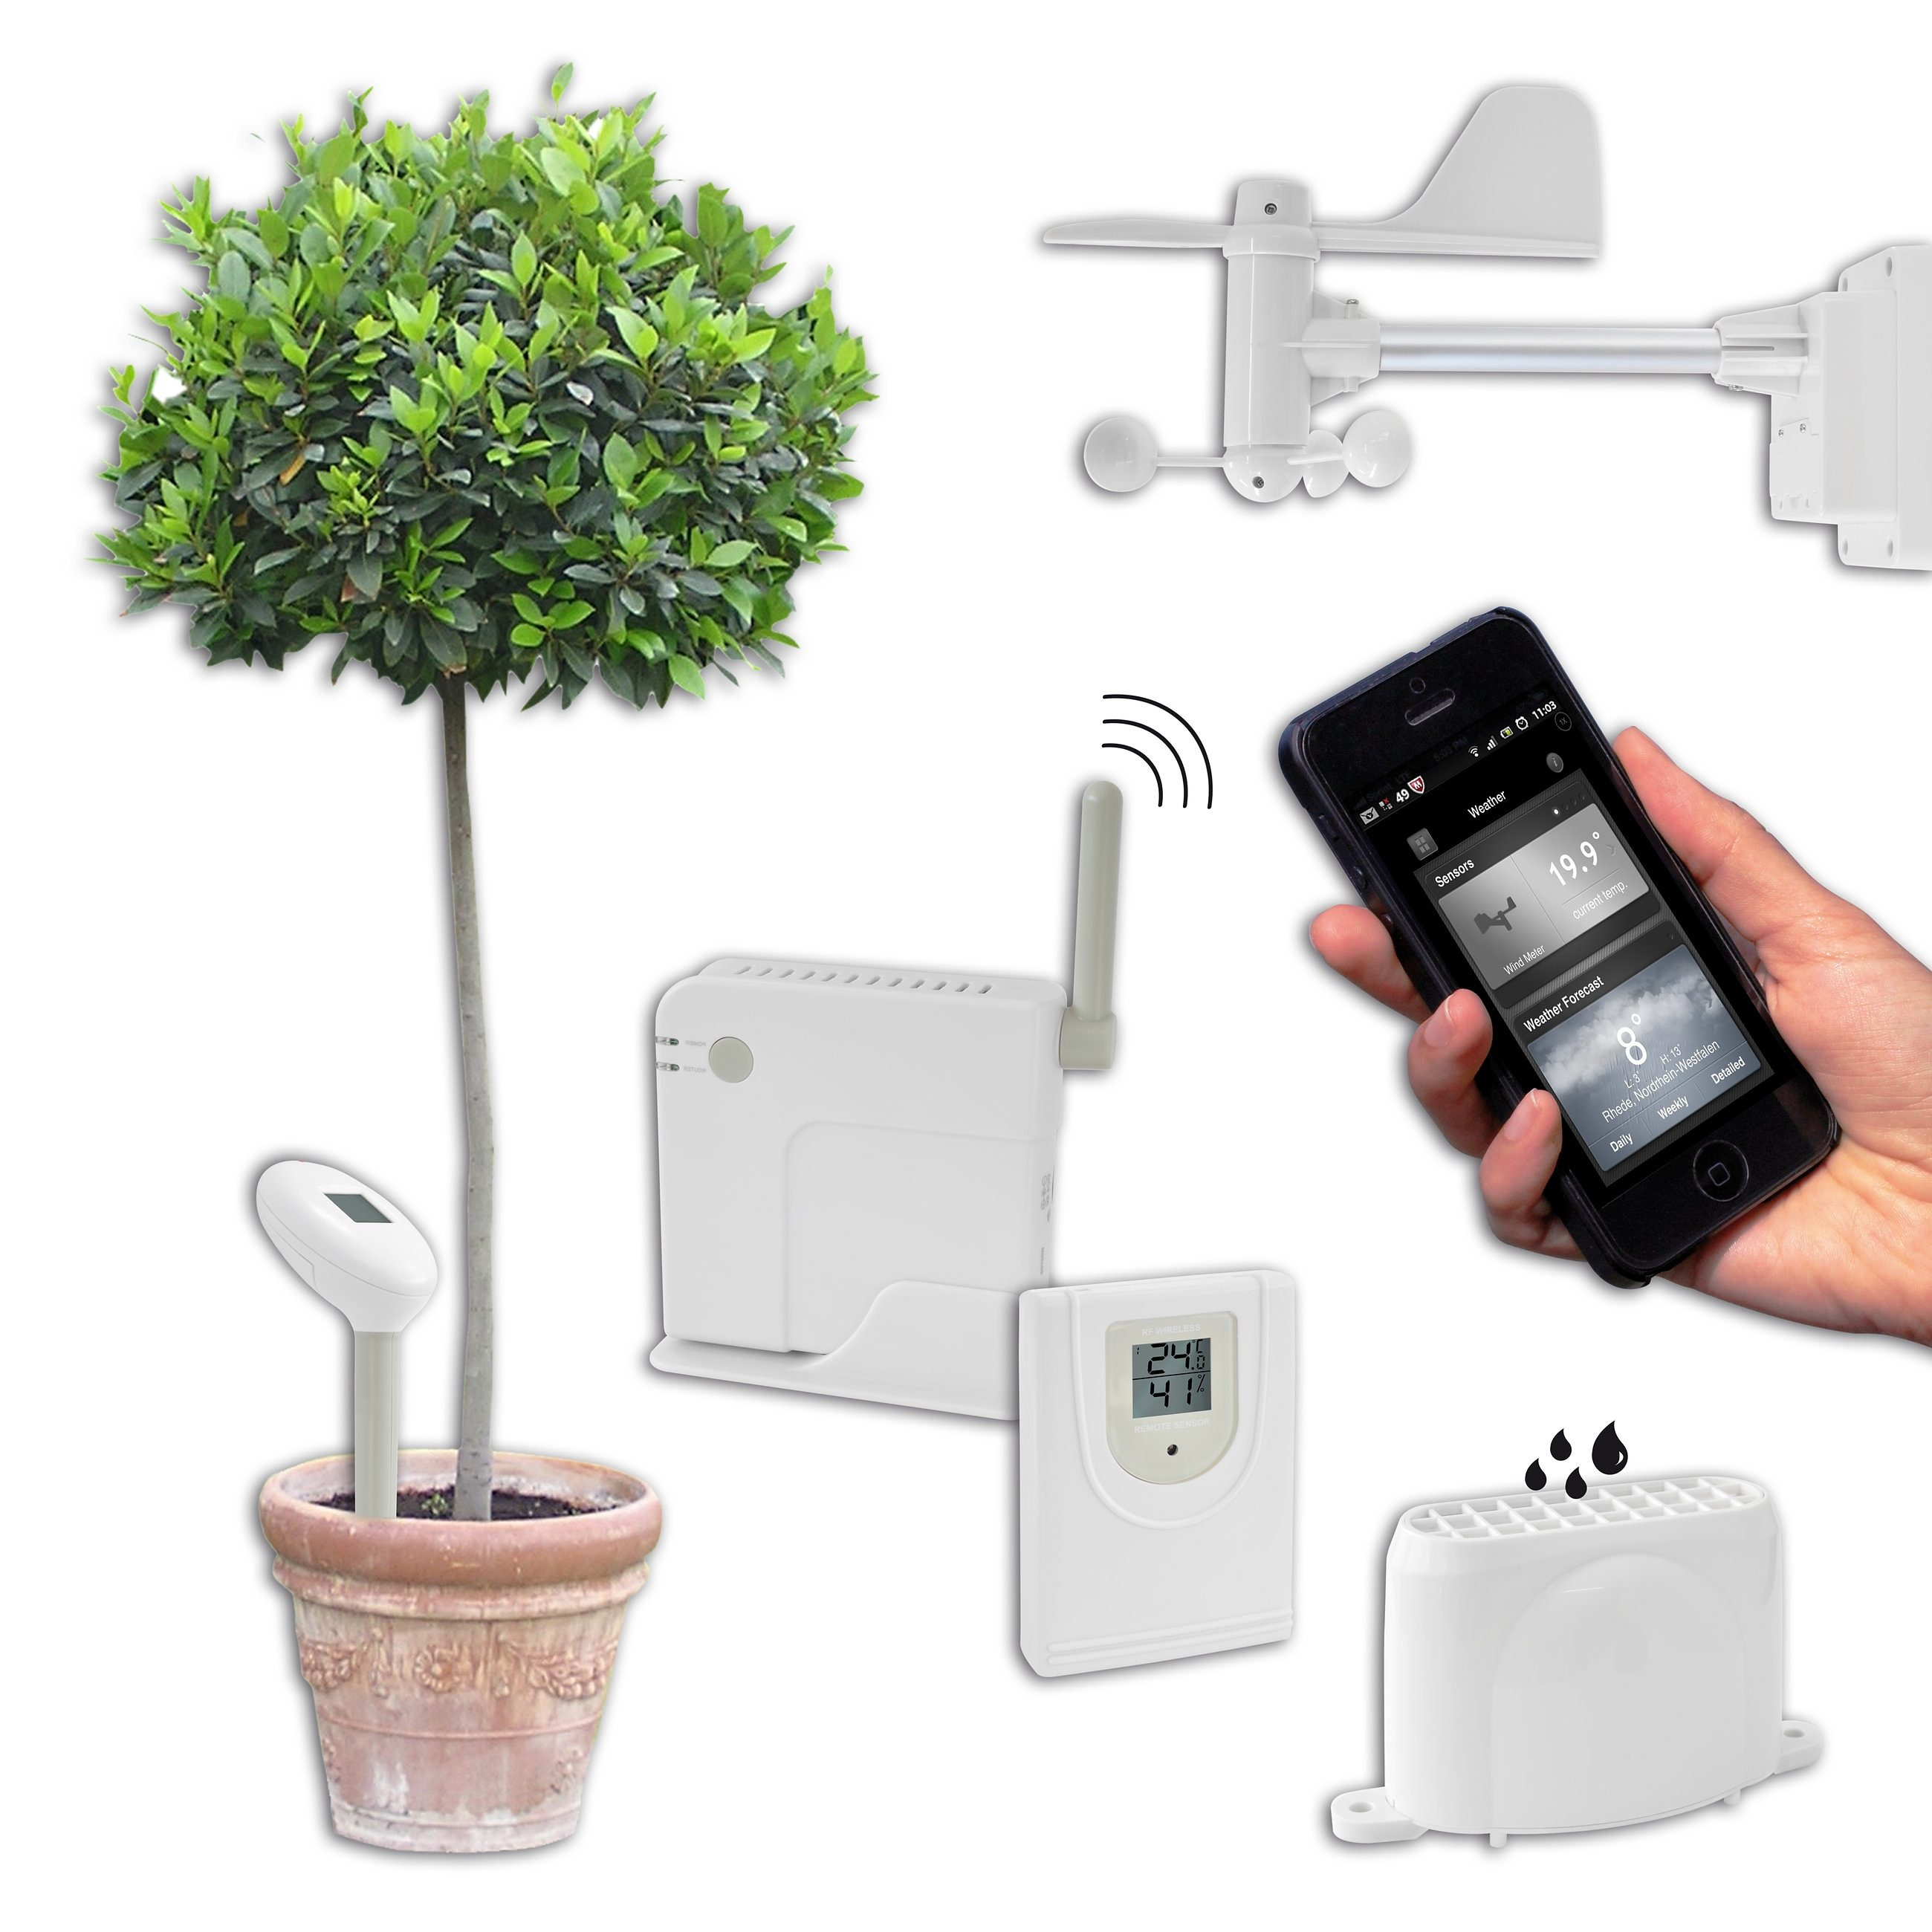 BRESSER Wetterstation »BRESSER Connect Set Wetterstation, Smart Home«